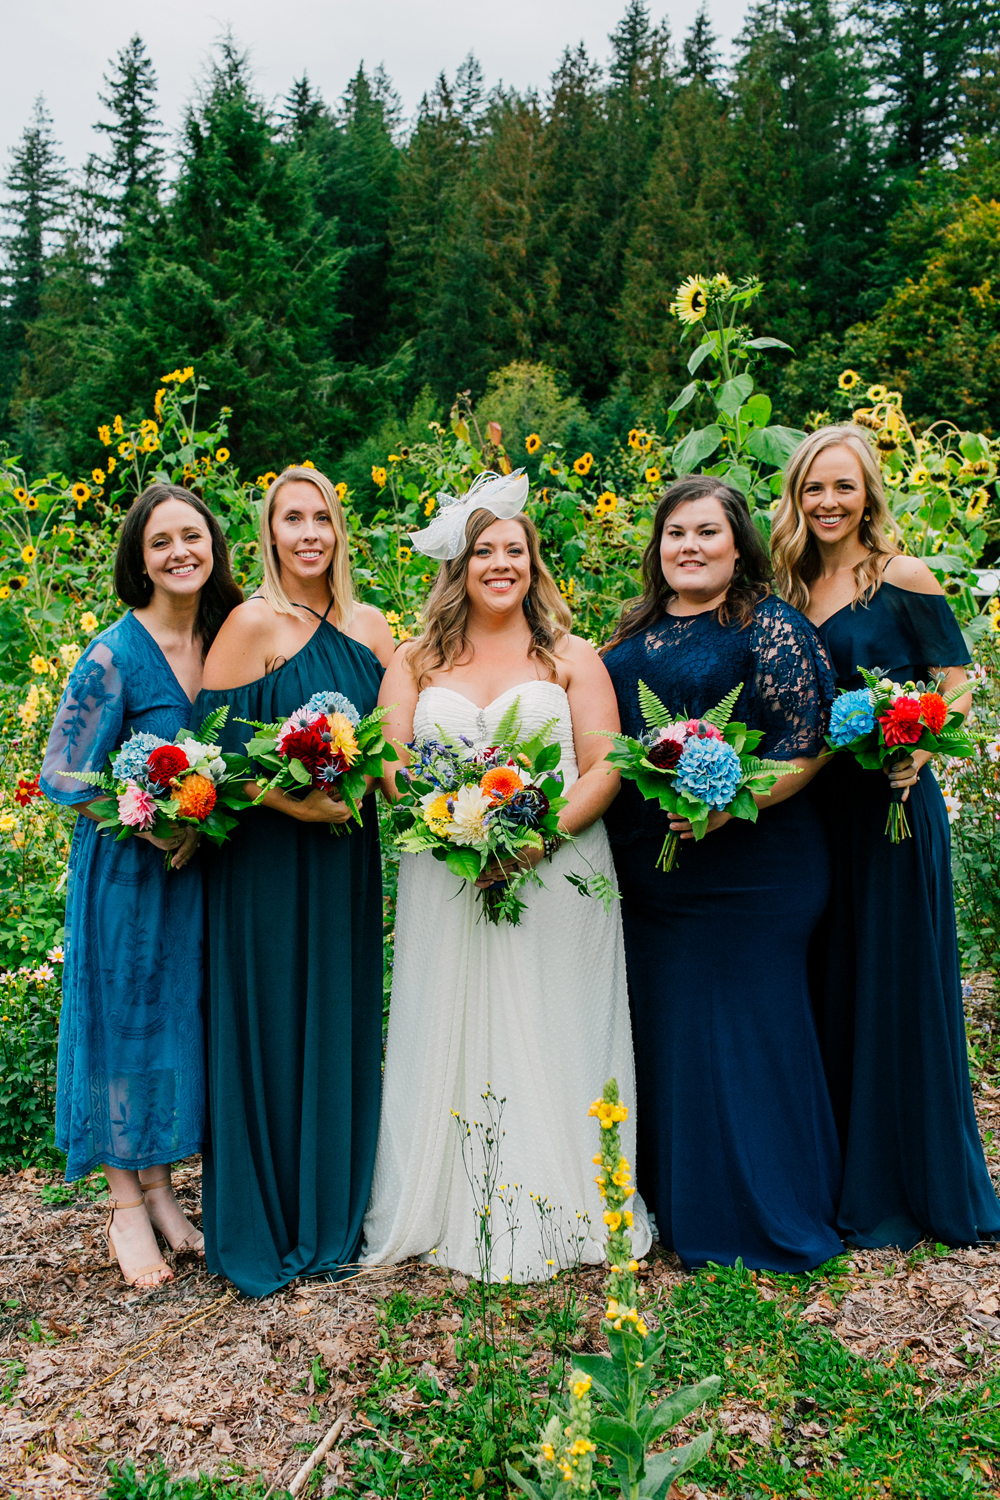 026-bellingham-wedding-photographer-wandering-waters-katheryn-moran-emma-eric.jpg